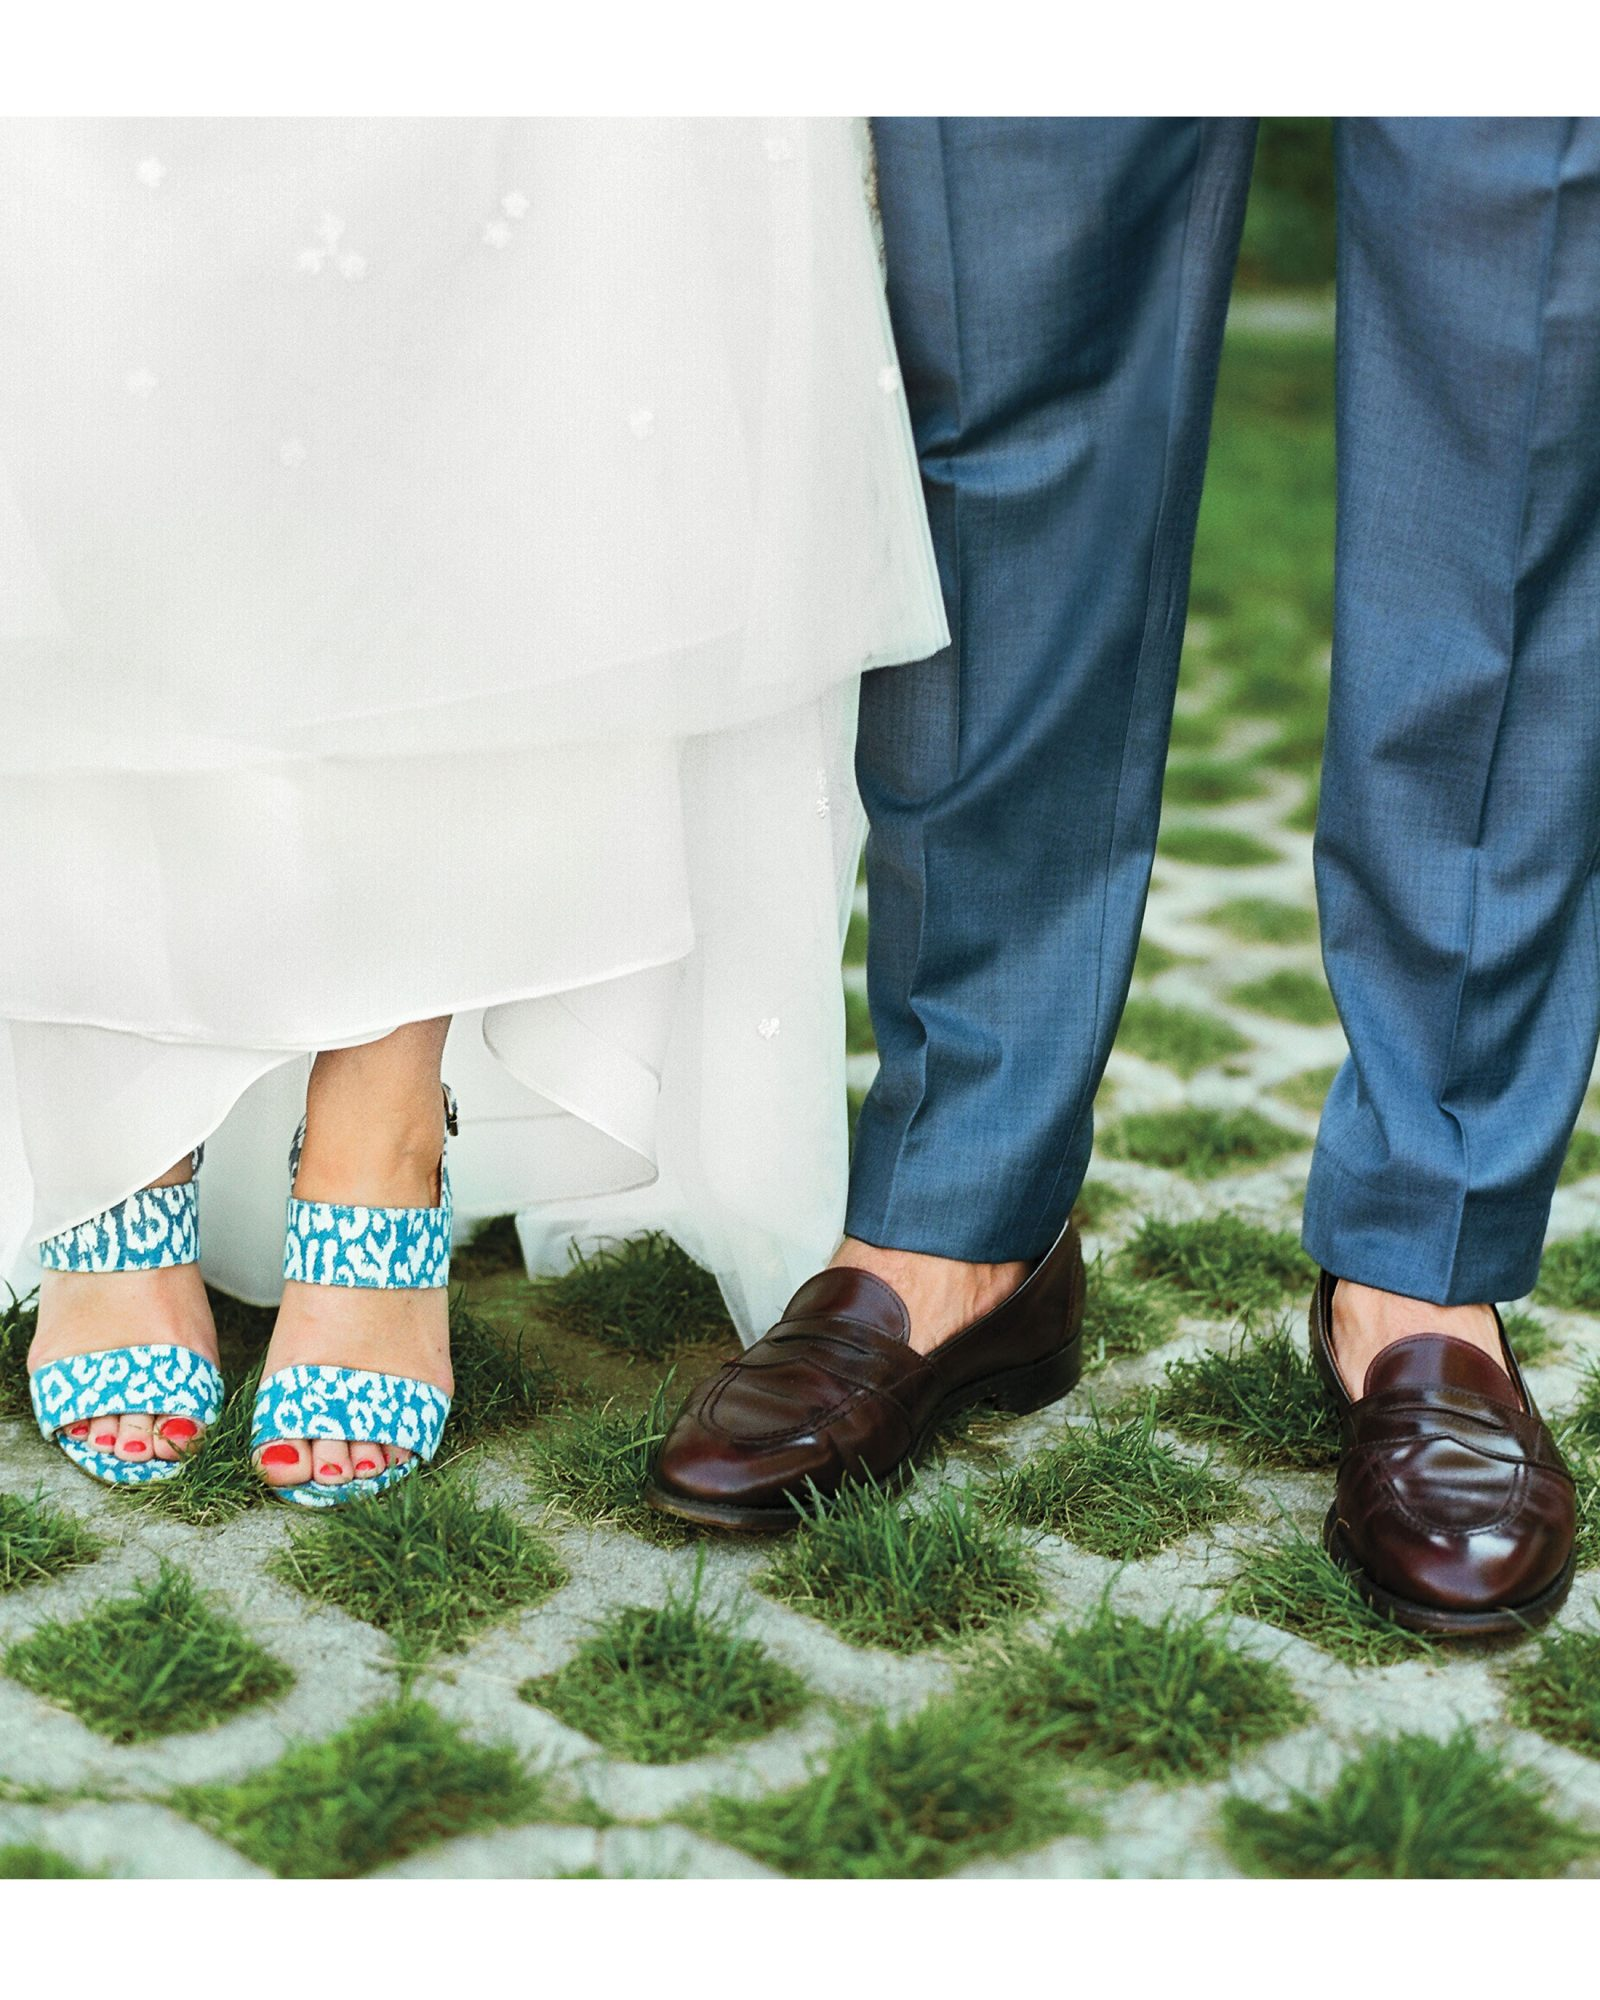 mfiona-peter-wedding-vermont-bride-and-groom-shoes-9652.11.2015.47-d112512.jpg